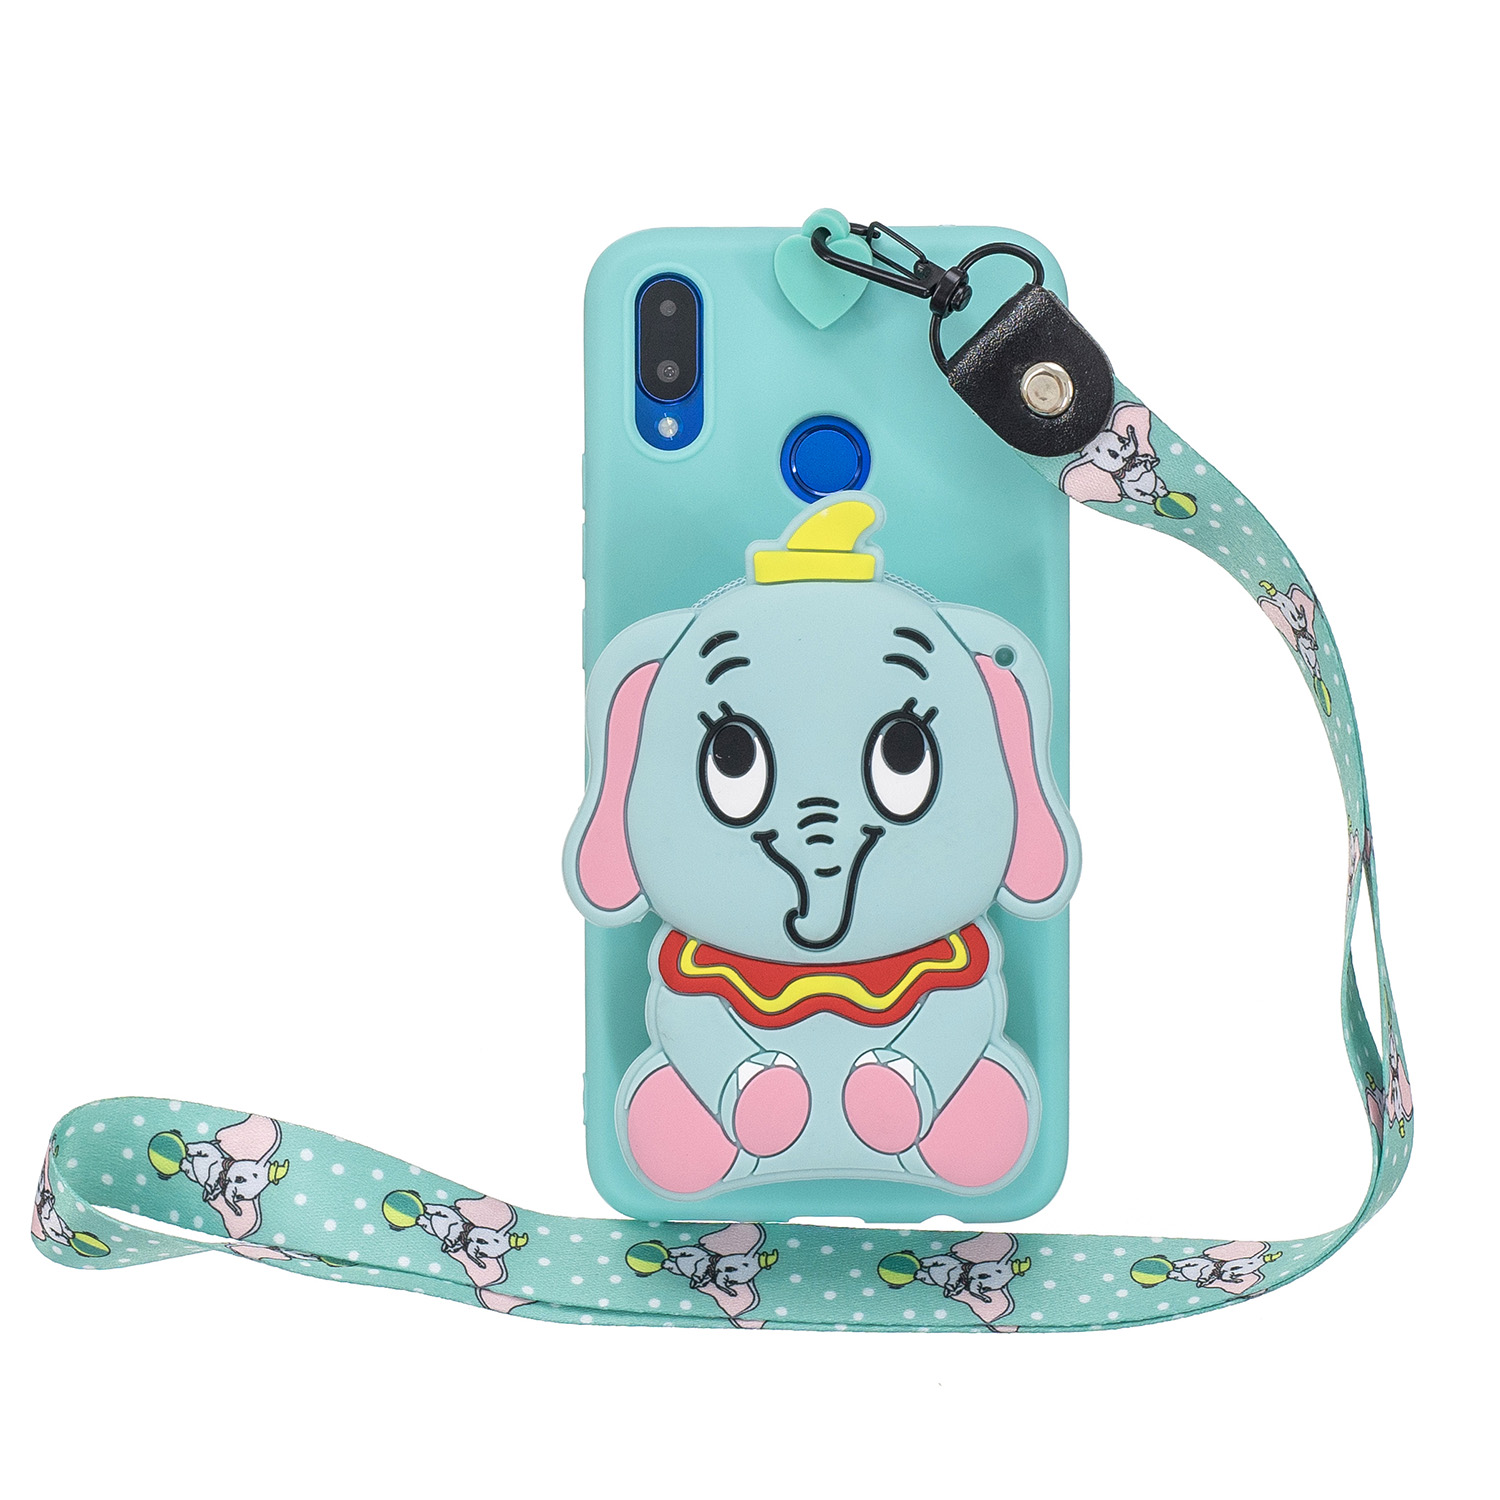 Cute Bear Cartoon Case For Vivo V3 Max Y15 Y27 Y927 Y31 Y35 <strong>V1</strong> Max Y37 Soft Silicone Strap Cover For Vivo Xplay 6 Case